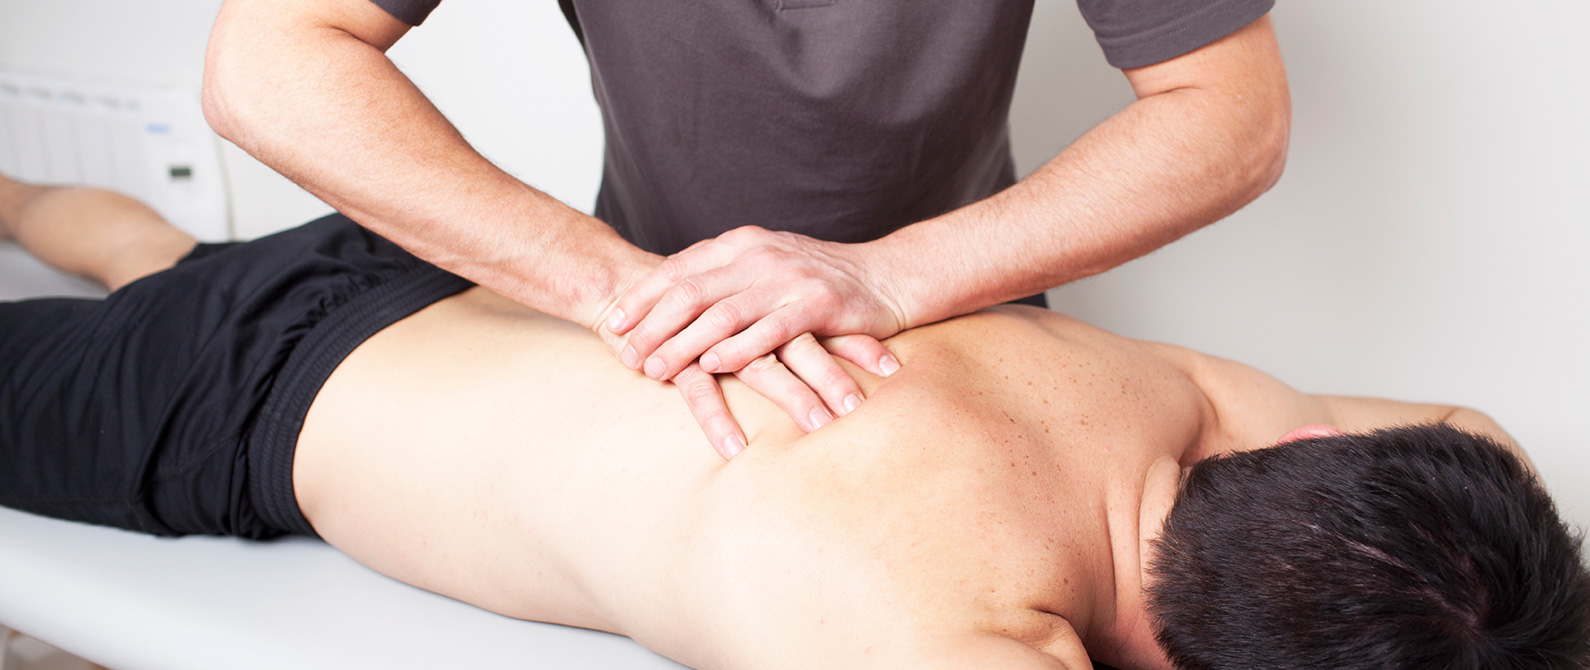 Back Pain Relief: 9 Back Pain Treatment Options